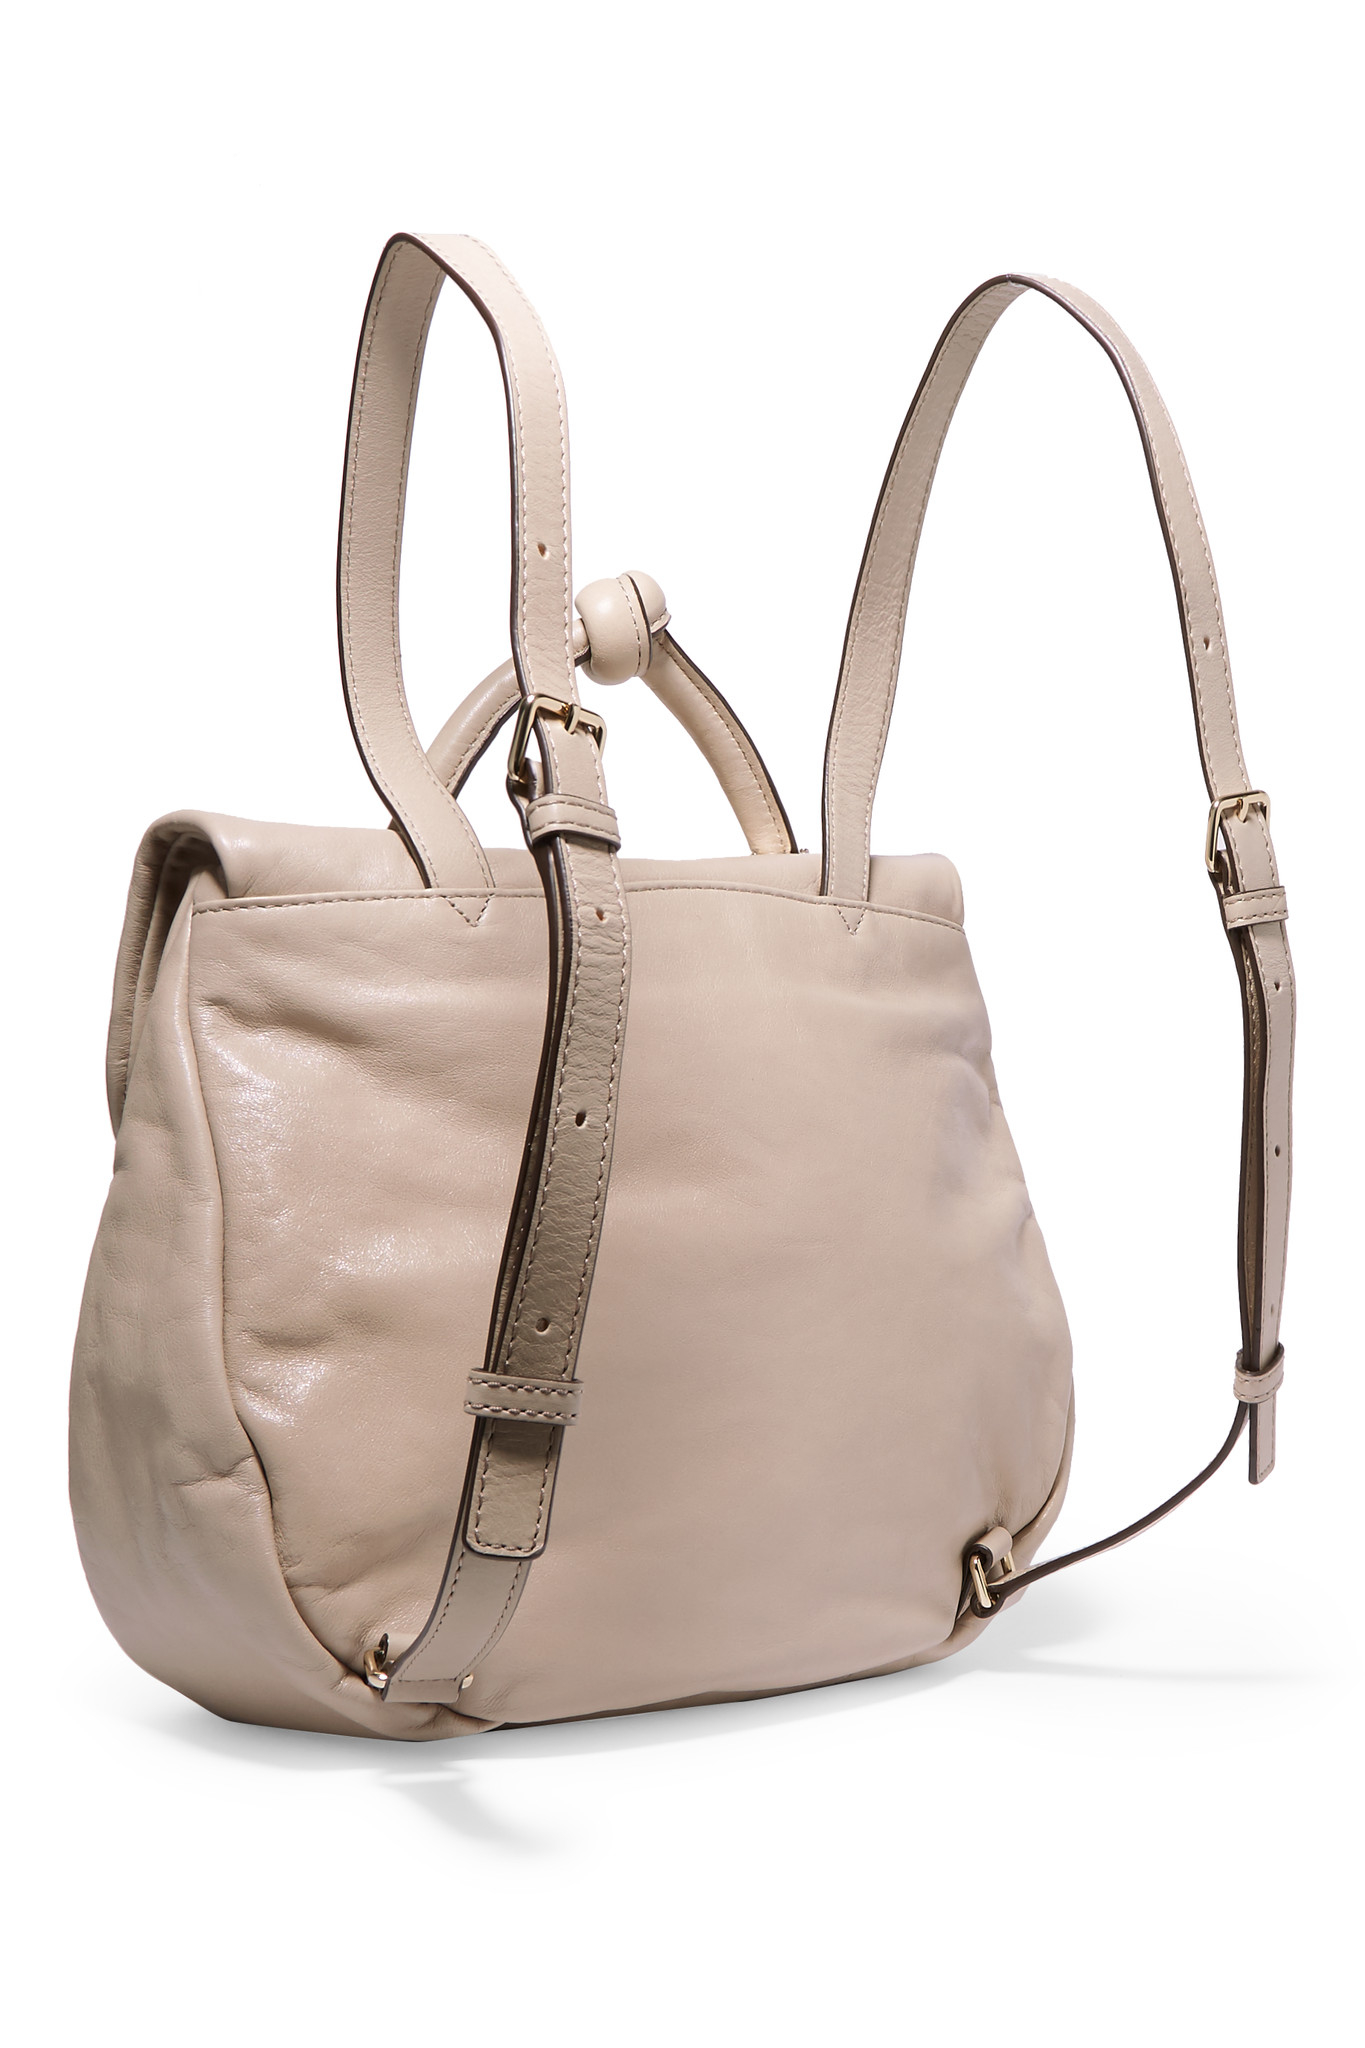 marc by marc jacobs leather backpack in natural beige lyst. Black Bedroom Furniture Sets. Home Design Ideas